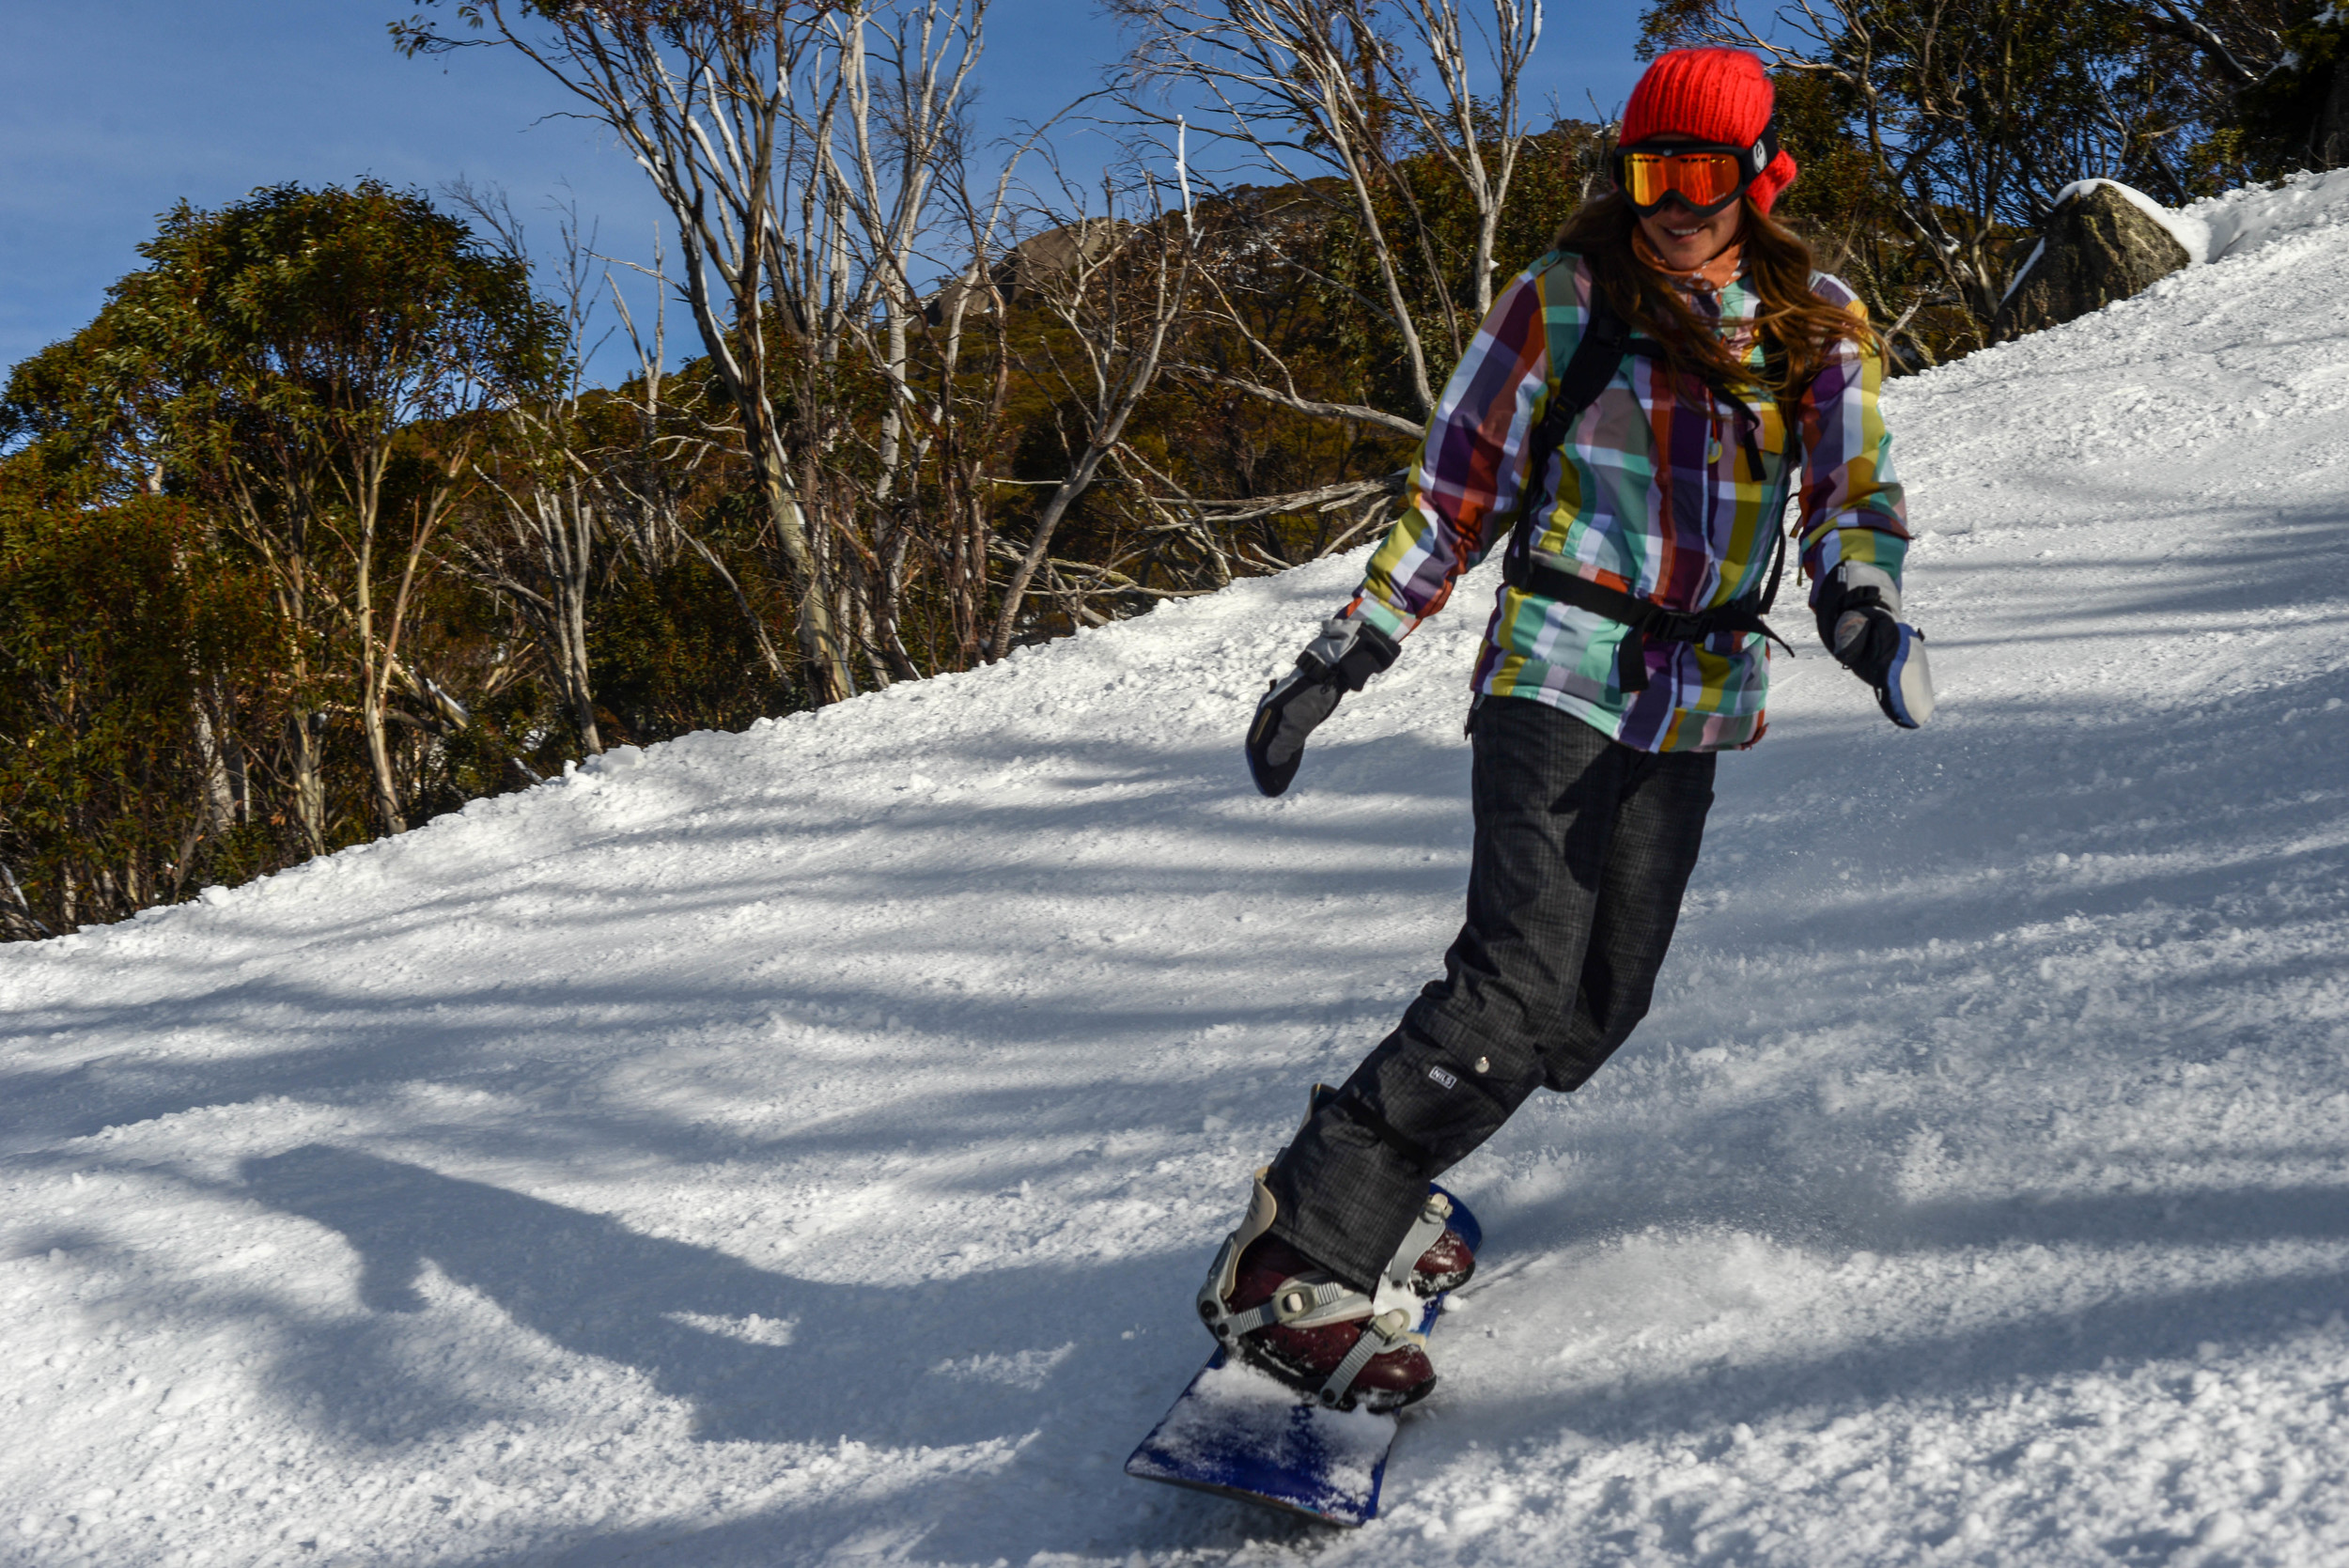 Snowboarding in Perisher, Kosciuszko National Park, New South Wales.